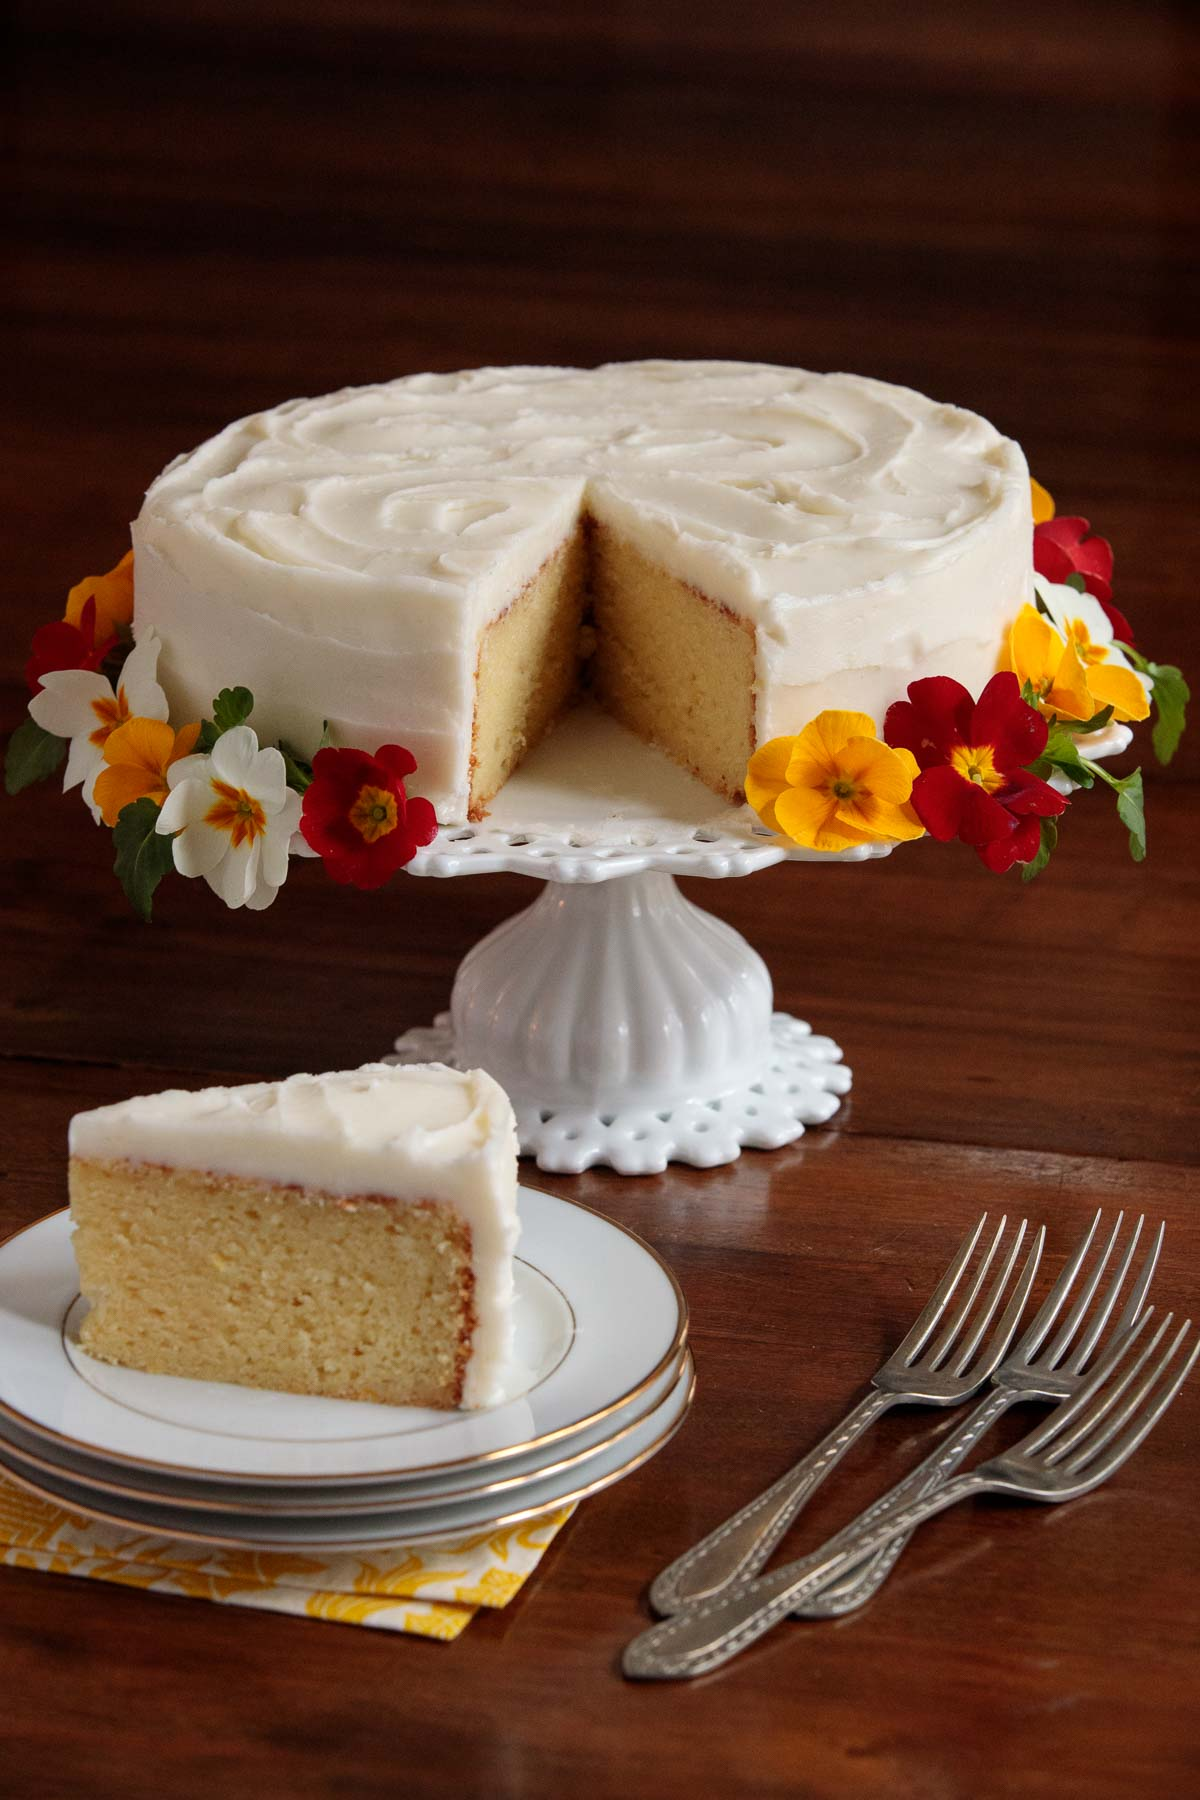 Photo of an Italian Lemon Ricotta Cake with a slice removed and on a separate serving plate. The cake is banded by pansies and primroses.